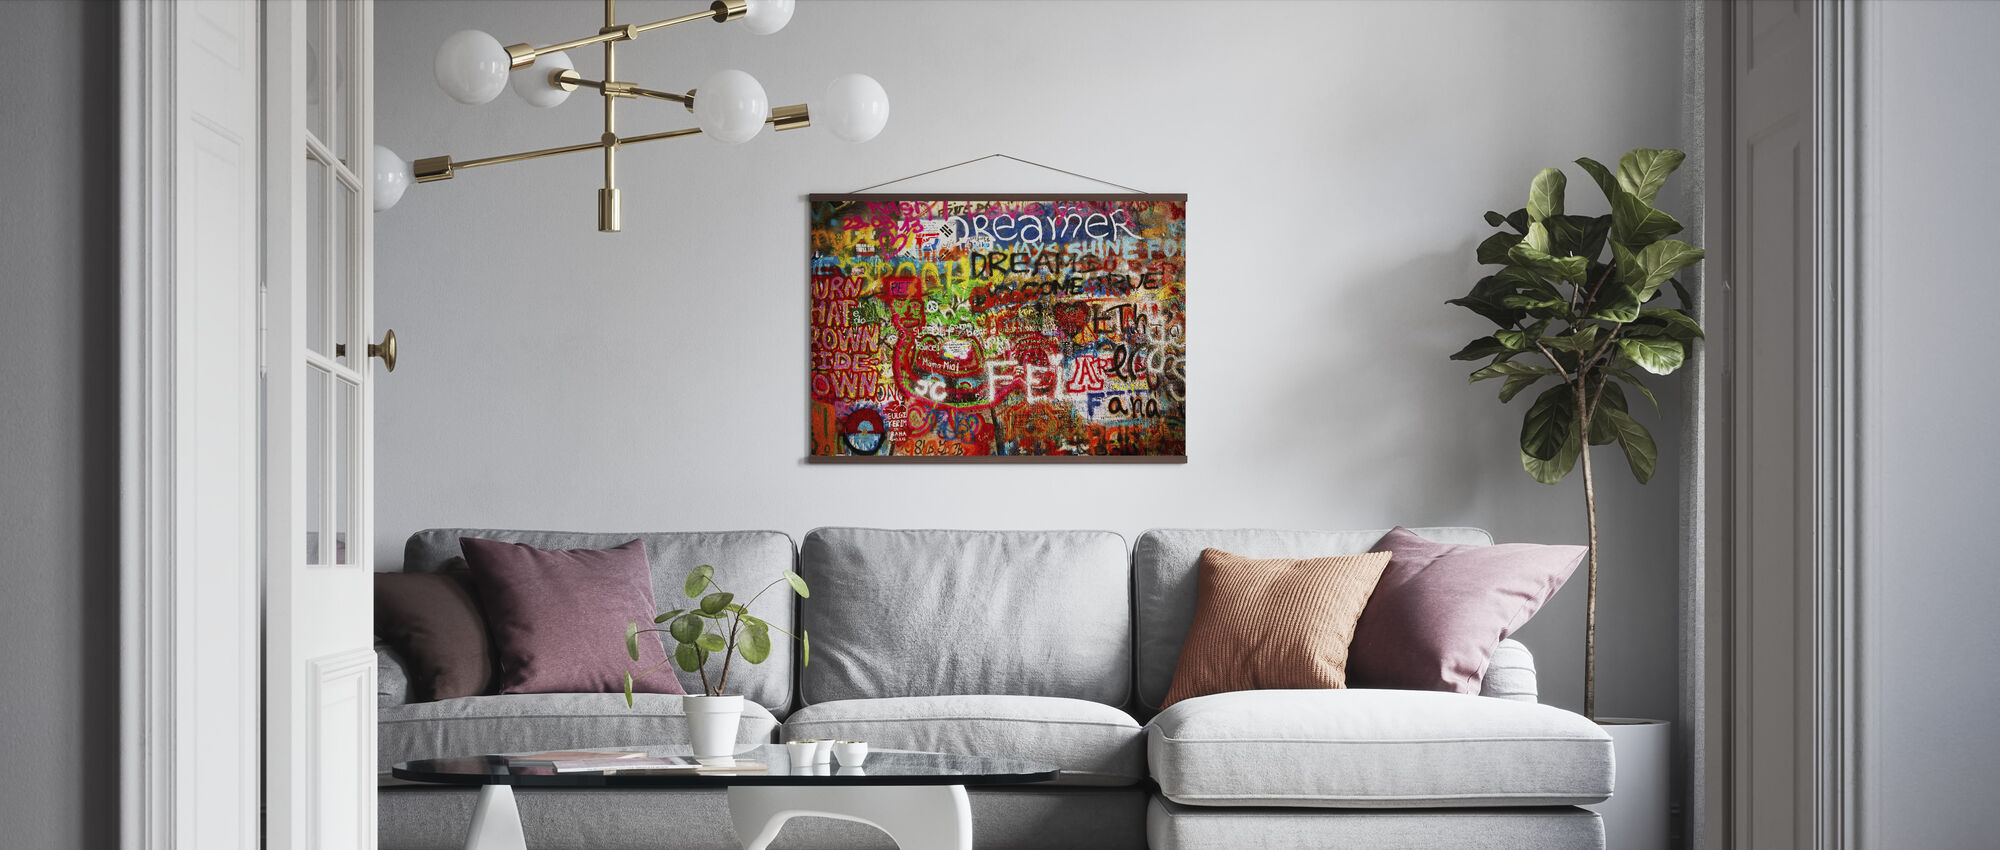 Graffiti Wall - Poster - Living Room